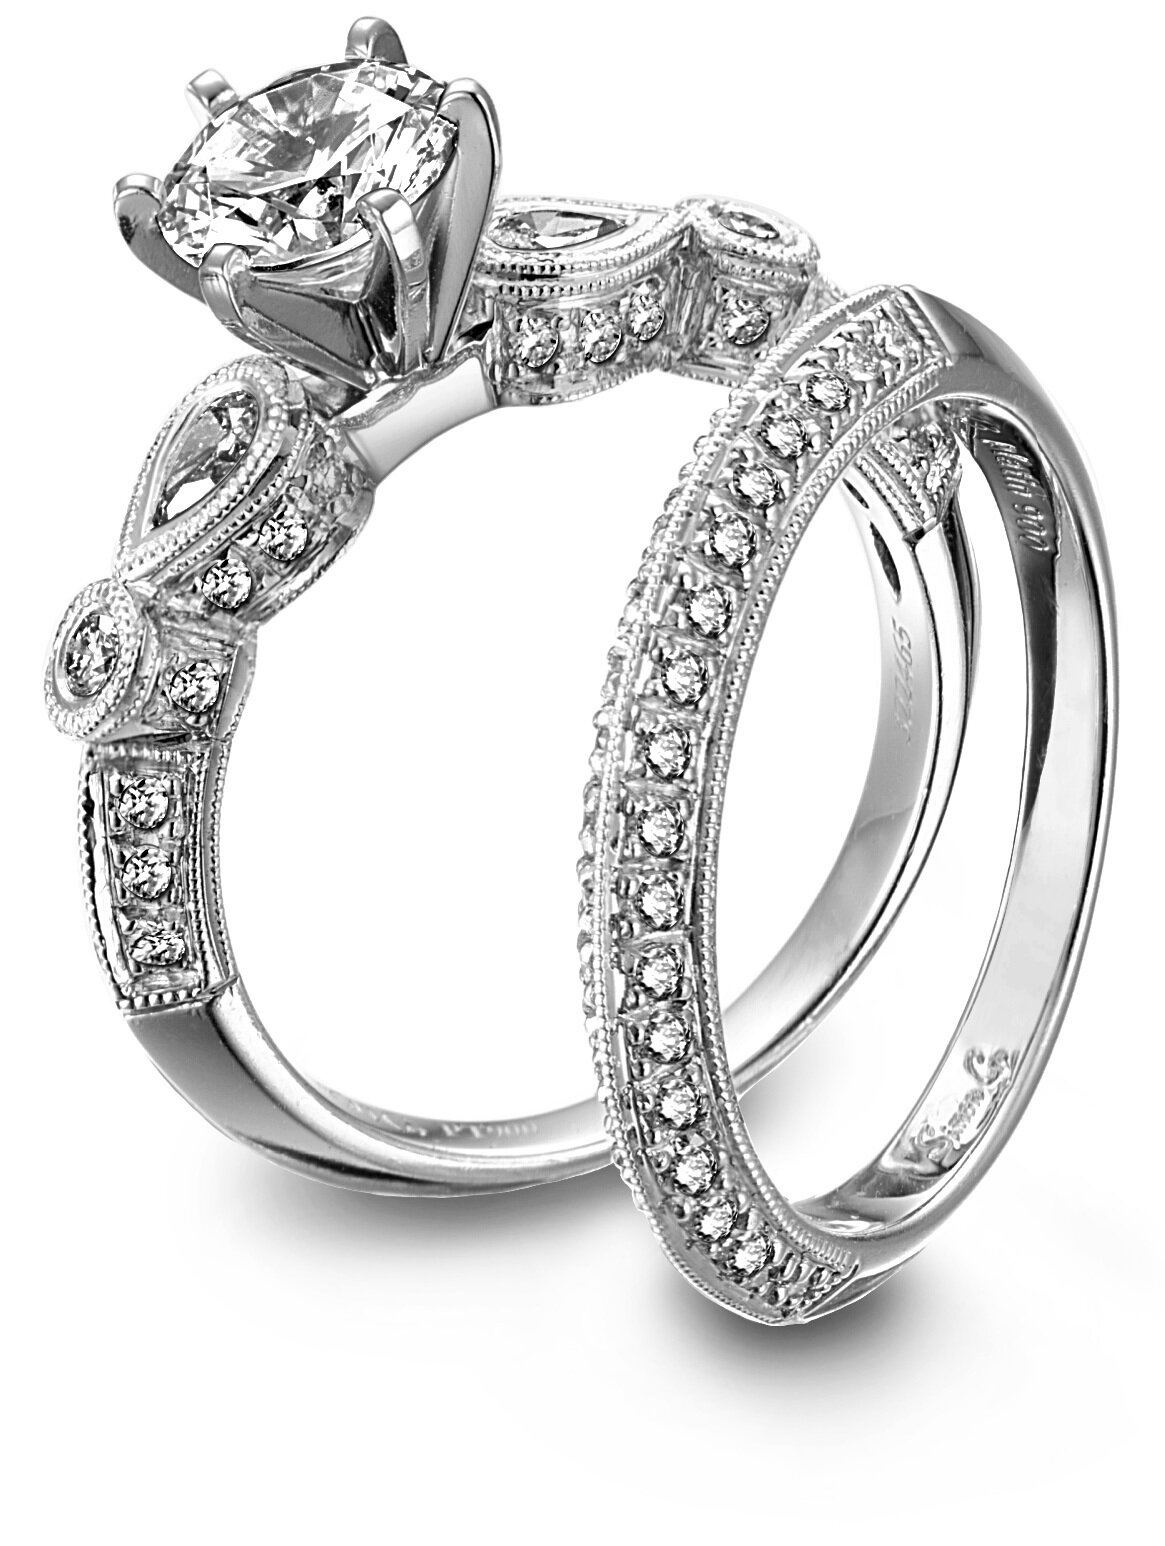 15 examples of brilliant wedding rings mostbeautifulthings for Wedding rings and bands